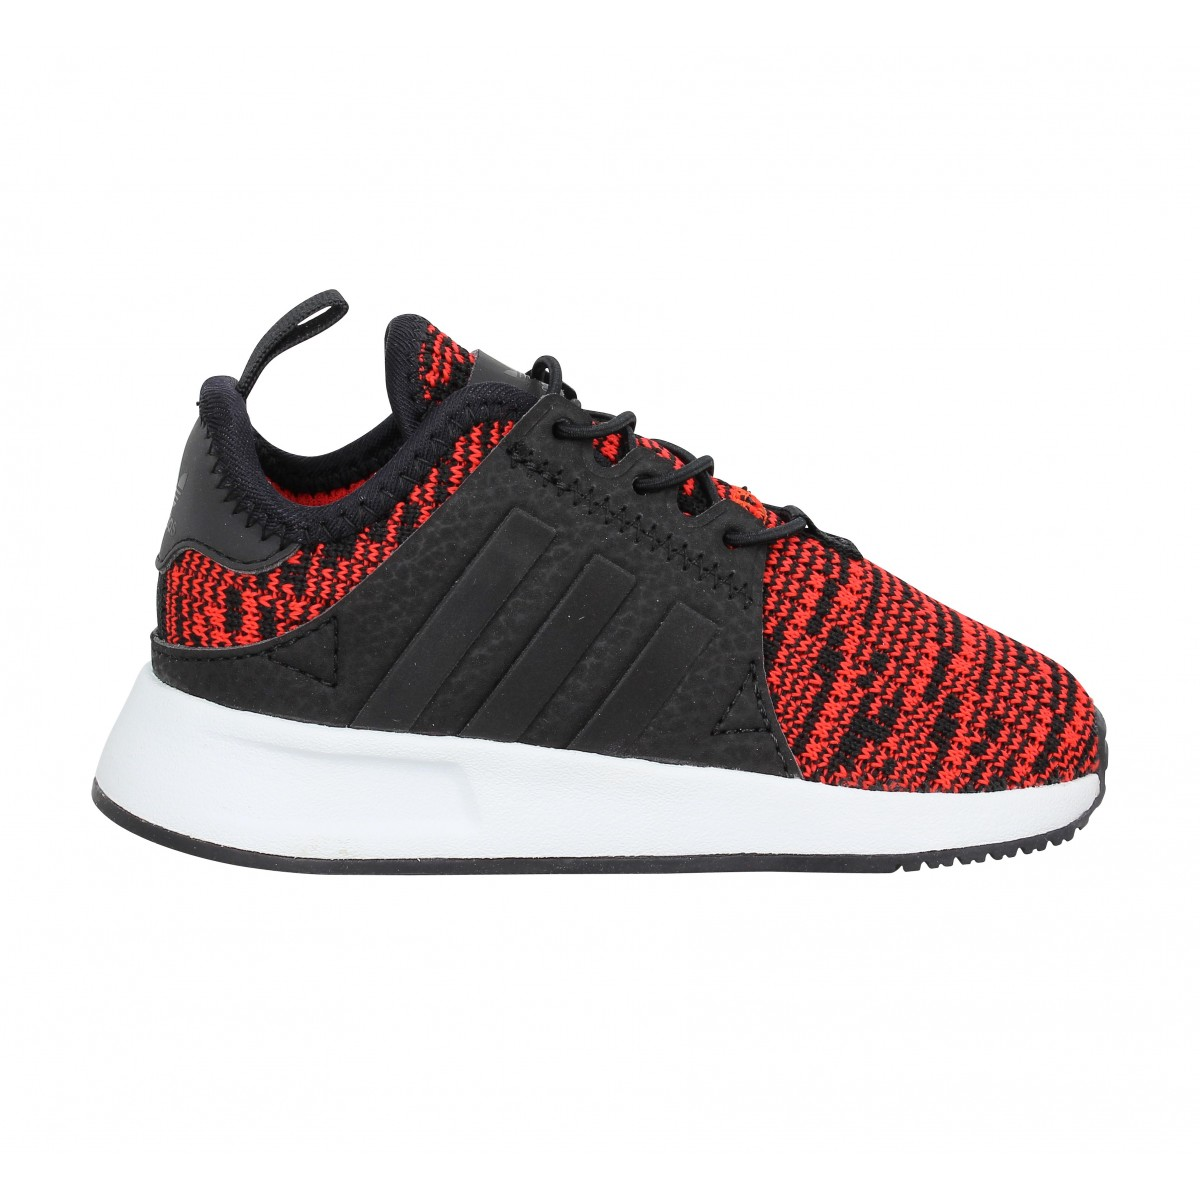 adidas x plr toile enfant rouge enfants fanny chaussures. Black Bedroom Furniture Sets. Home Design Ideas